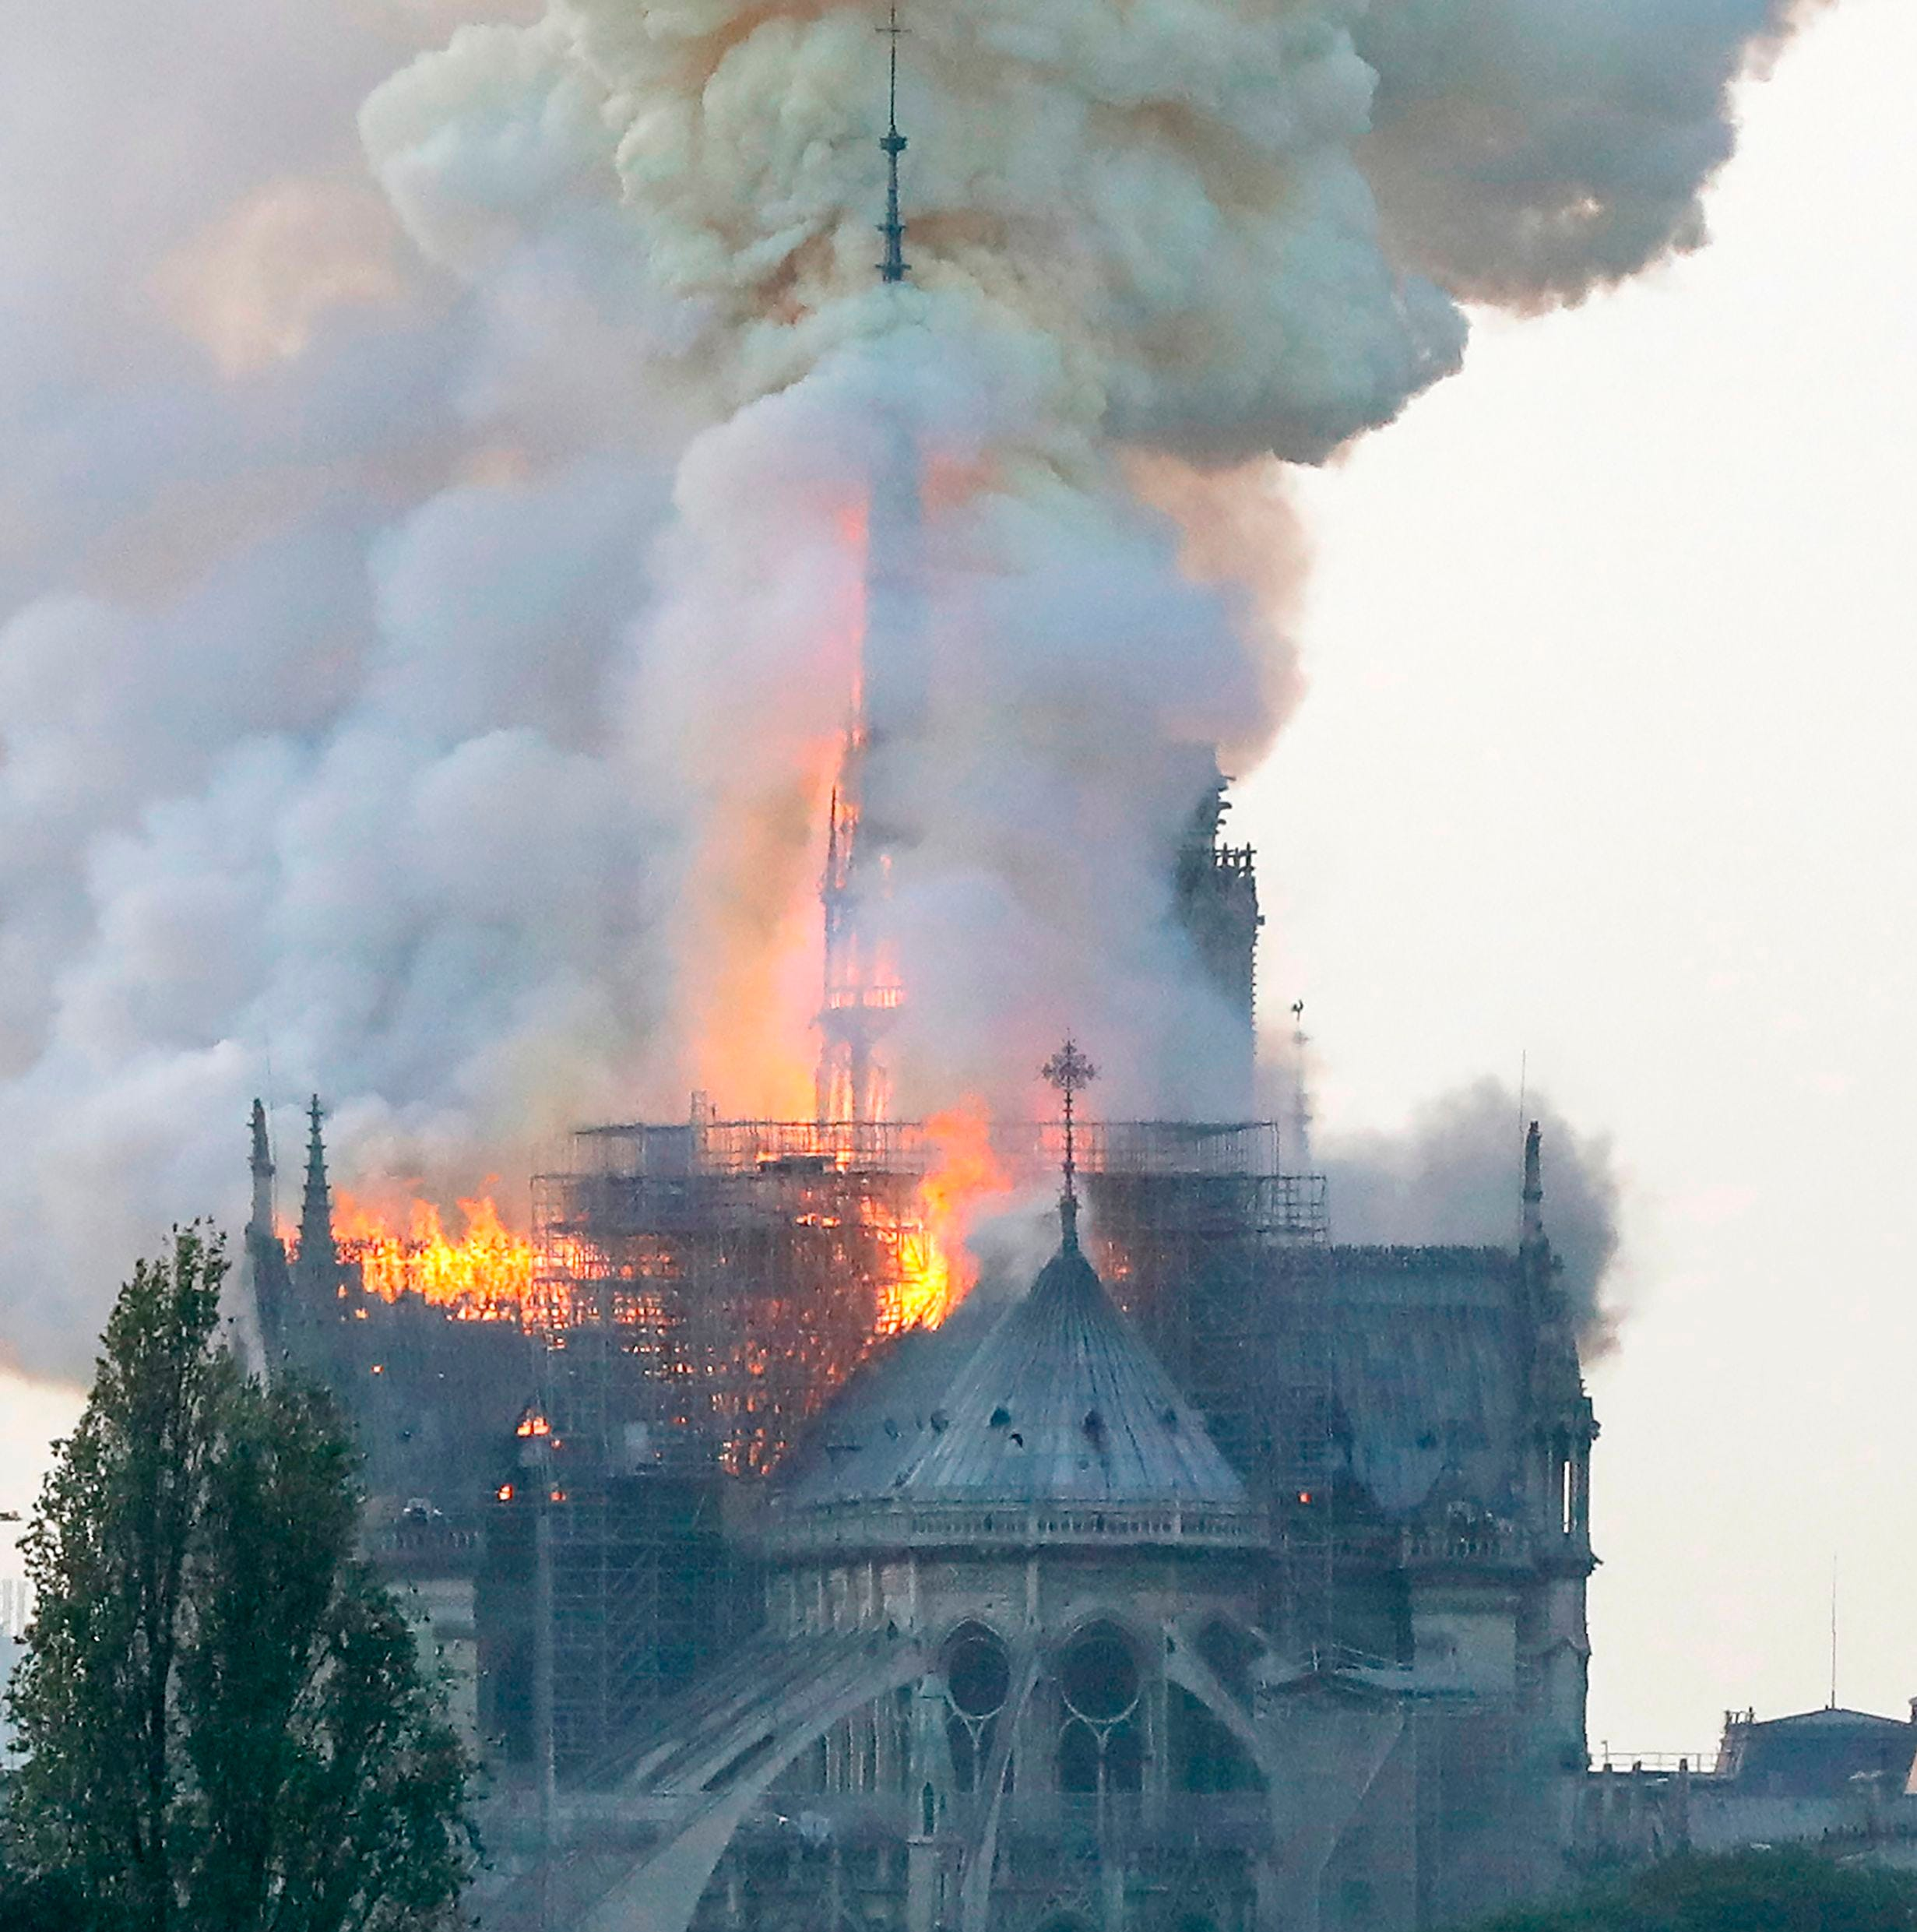 People take to Twitter to show horrifying blaze at Notre Dame cathedral